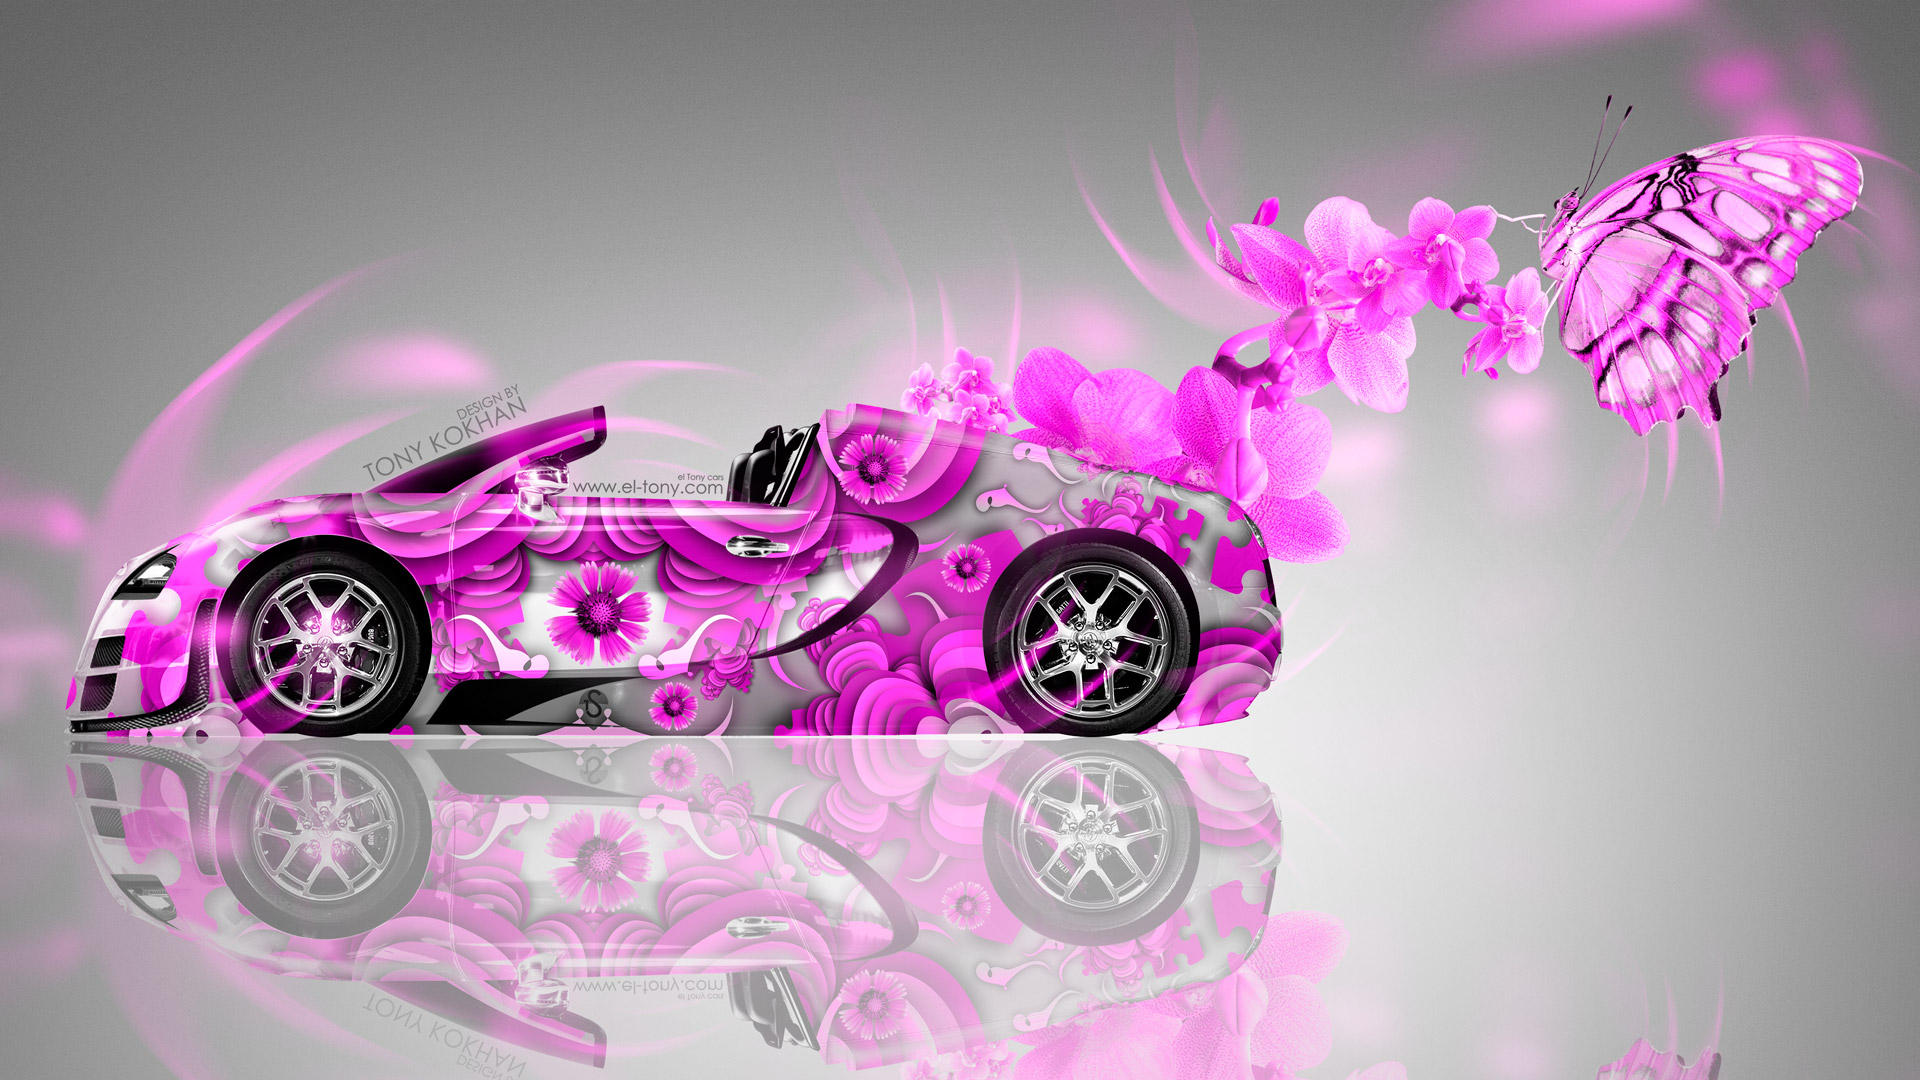 Audi Car Logo Wallpapers Bugatti Veyron Roadster Fantasy Flowers Butterfly Car 2014